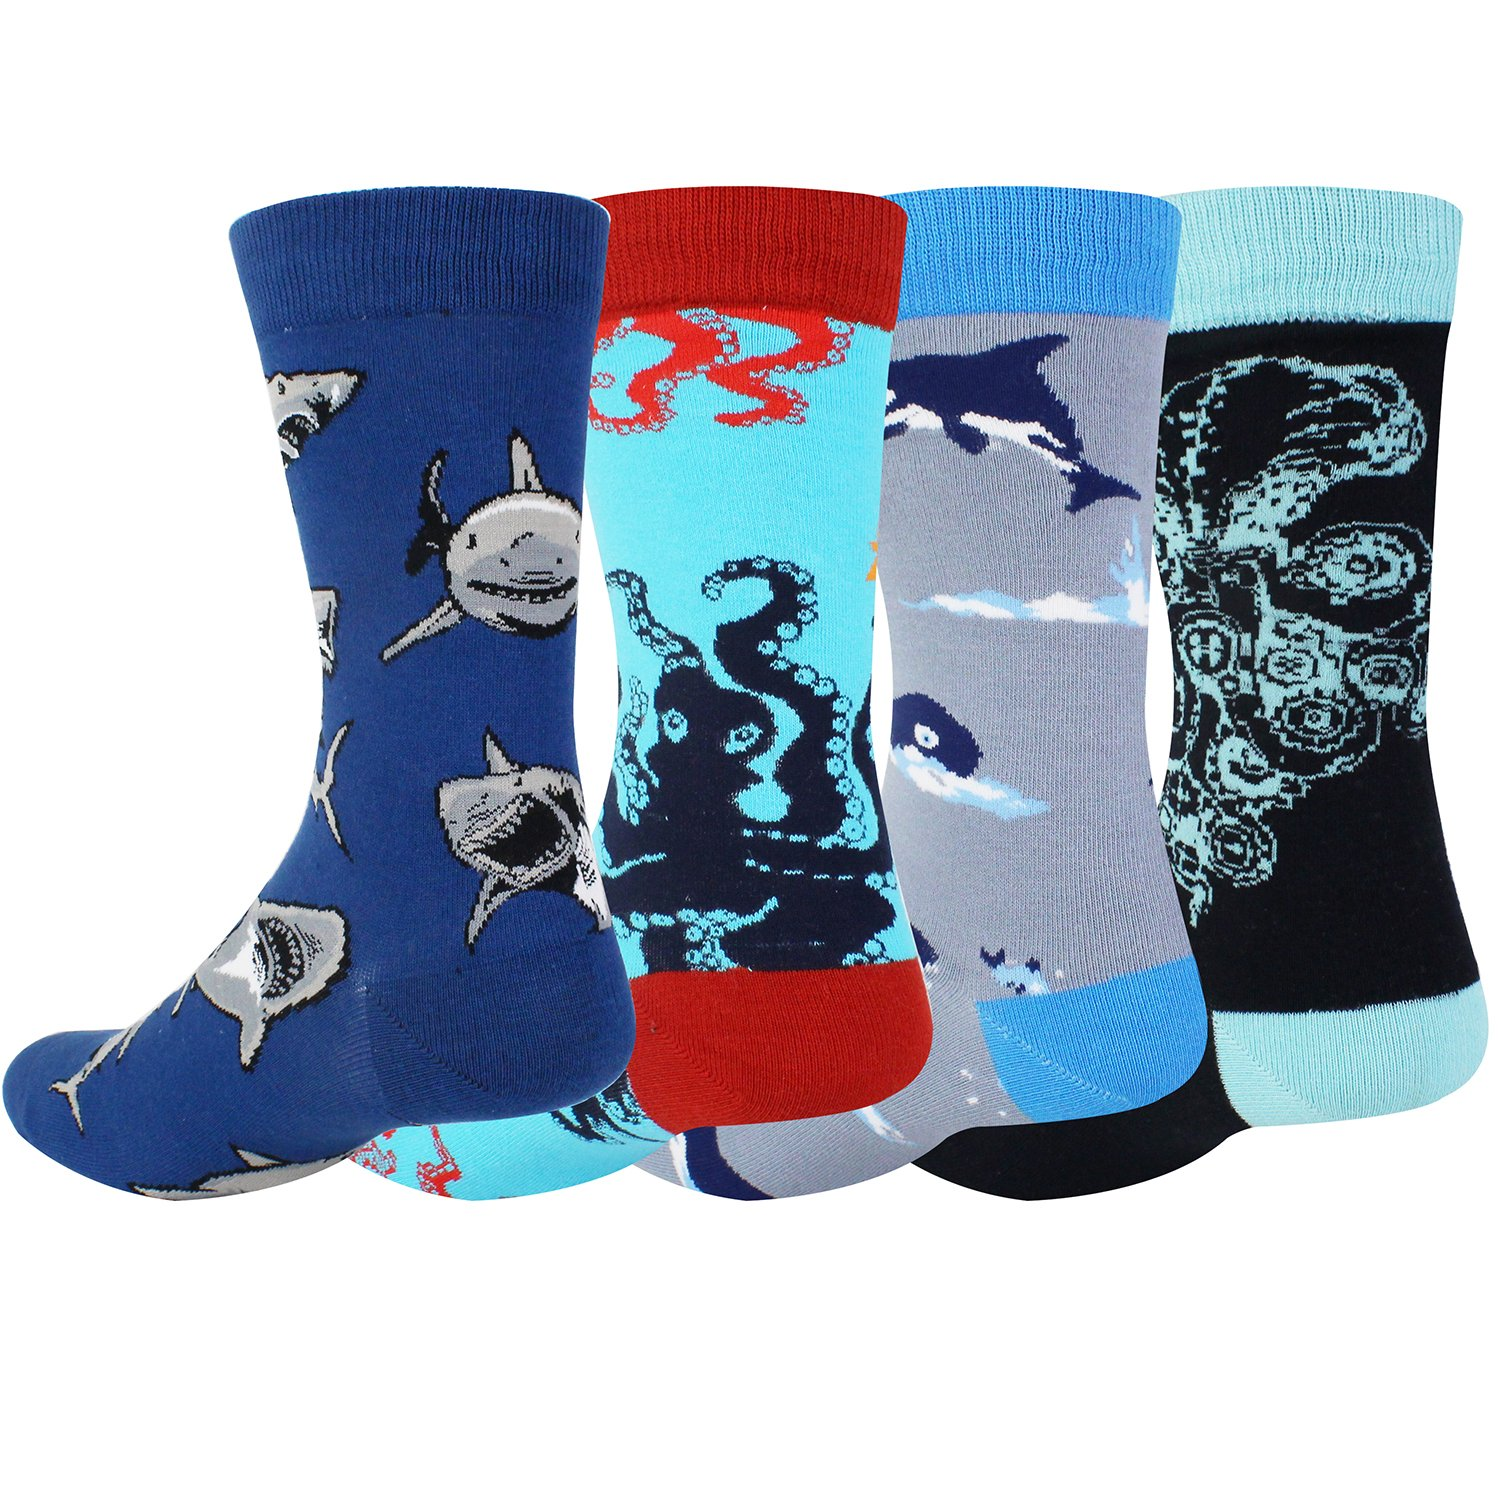 Novelty Cool Crazy Funny Dress Socks,Colorful Cotton Crew Socks, Shark Whale Octopus Gifts for Men by Happypop (Image #3)